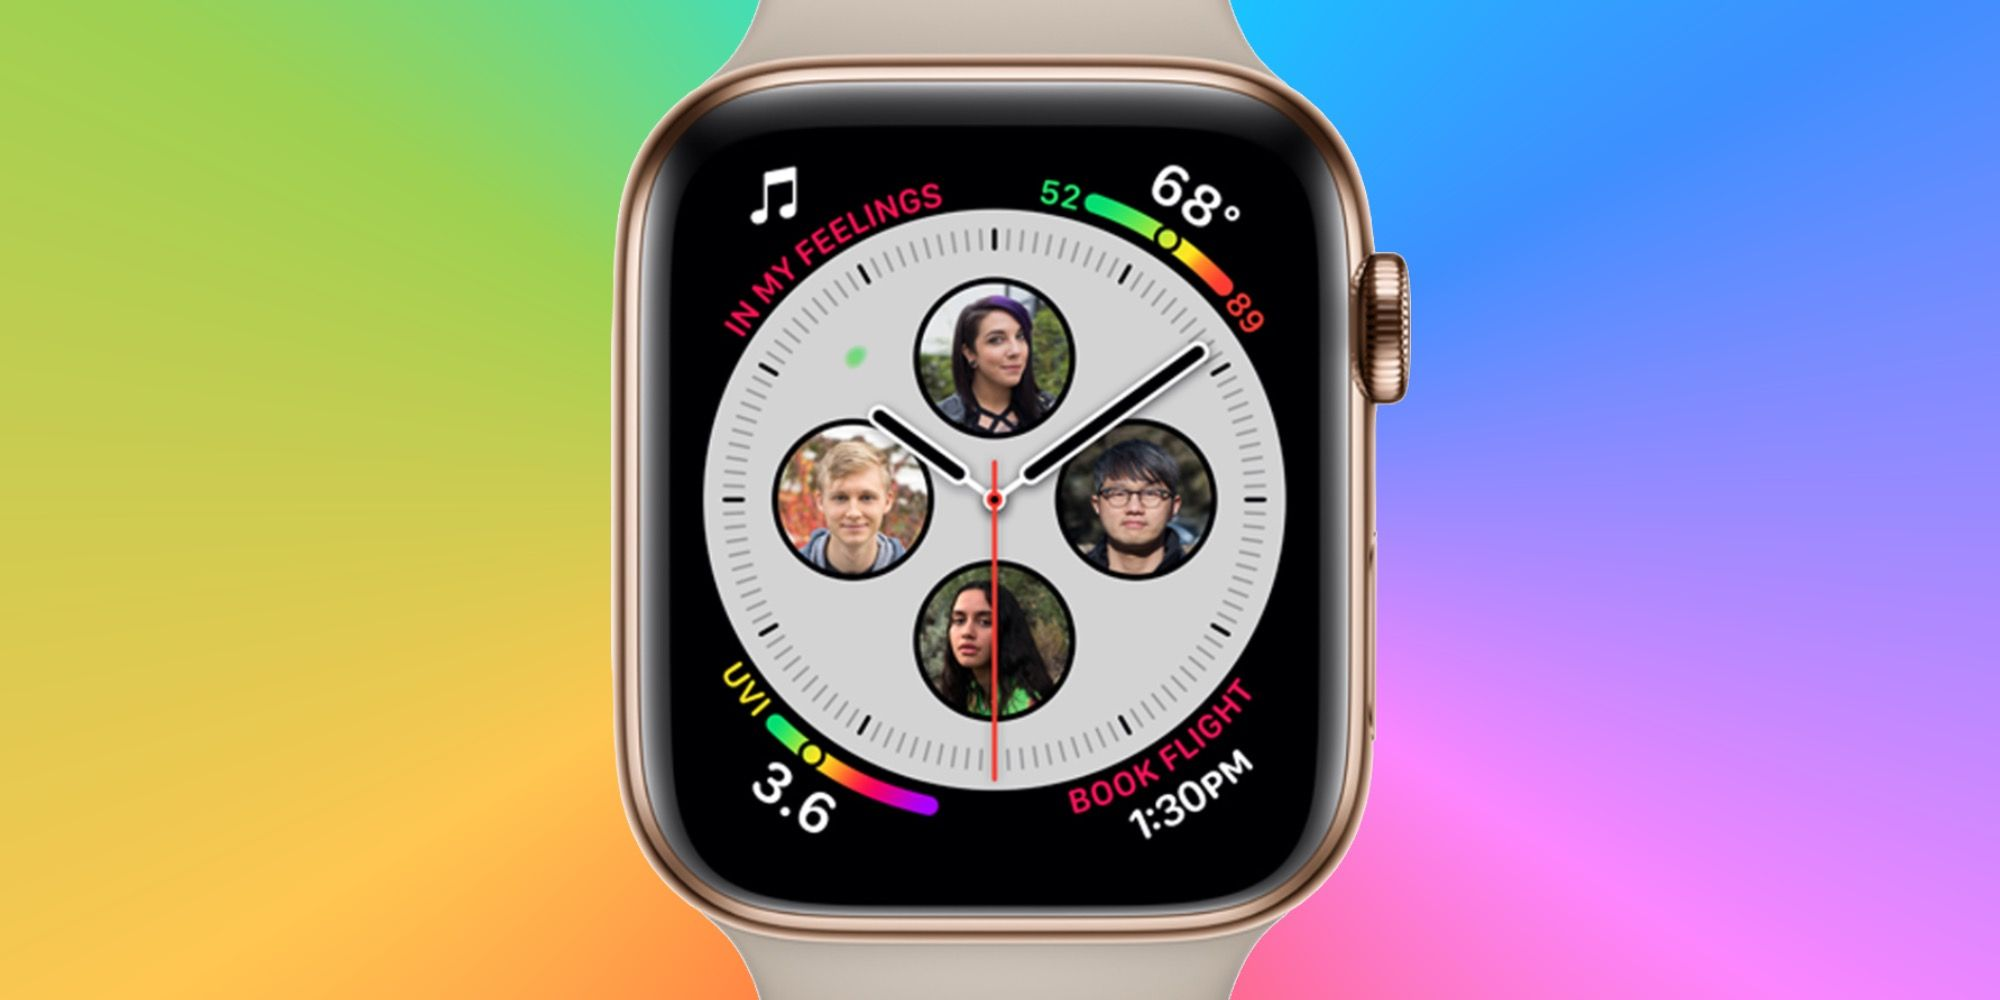 Apple Watch SE Might Be A Watch Series 4, But Without ECG - Total Daily